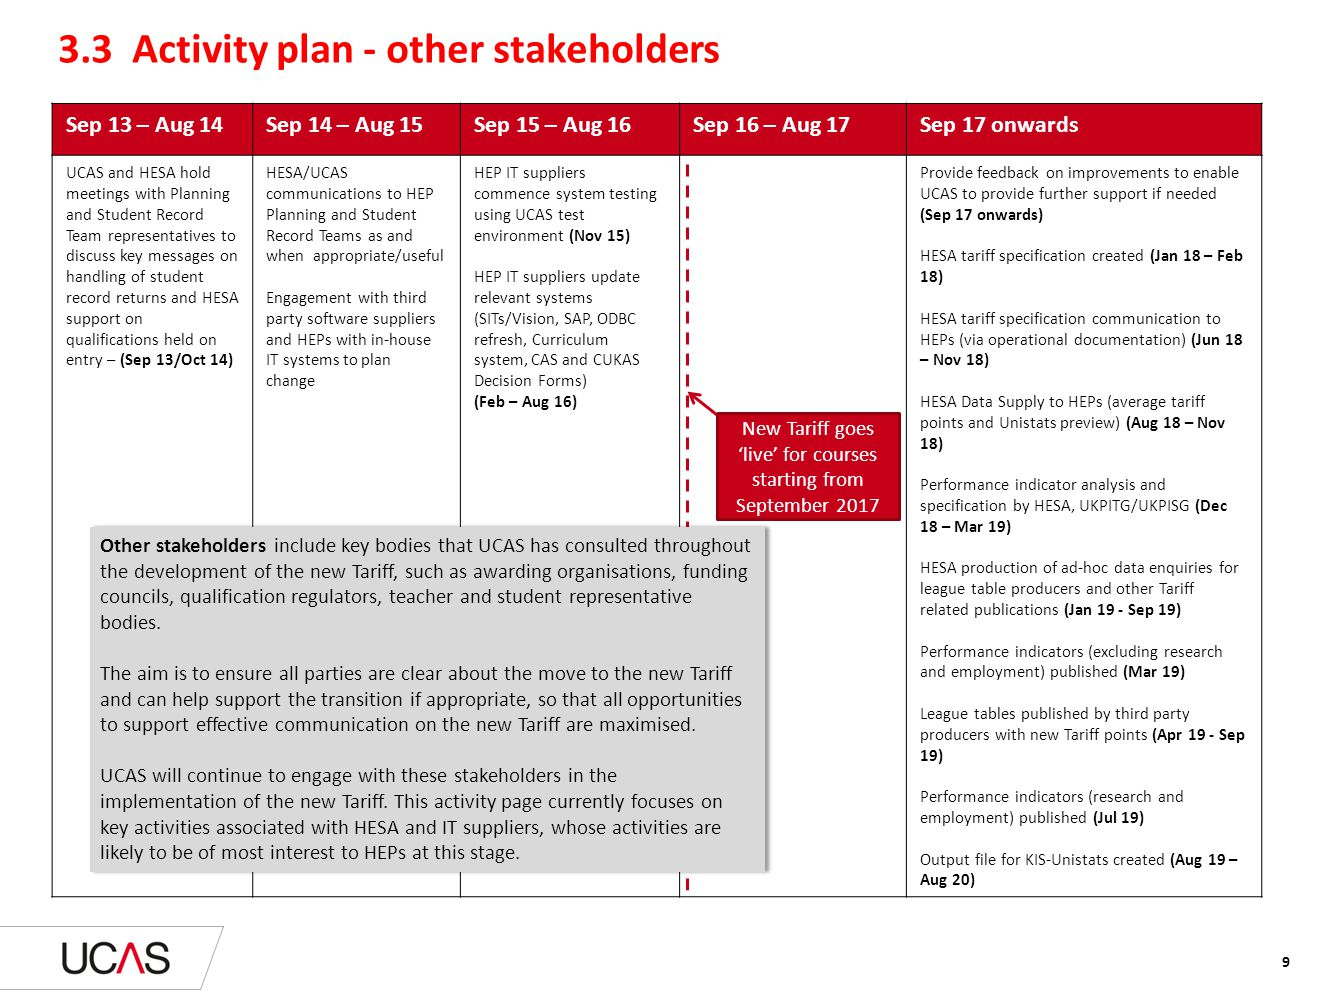 3.3 Activity plan - other stakeholders